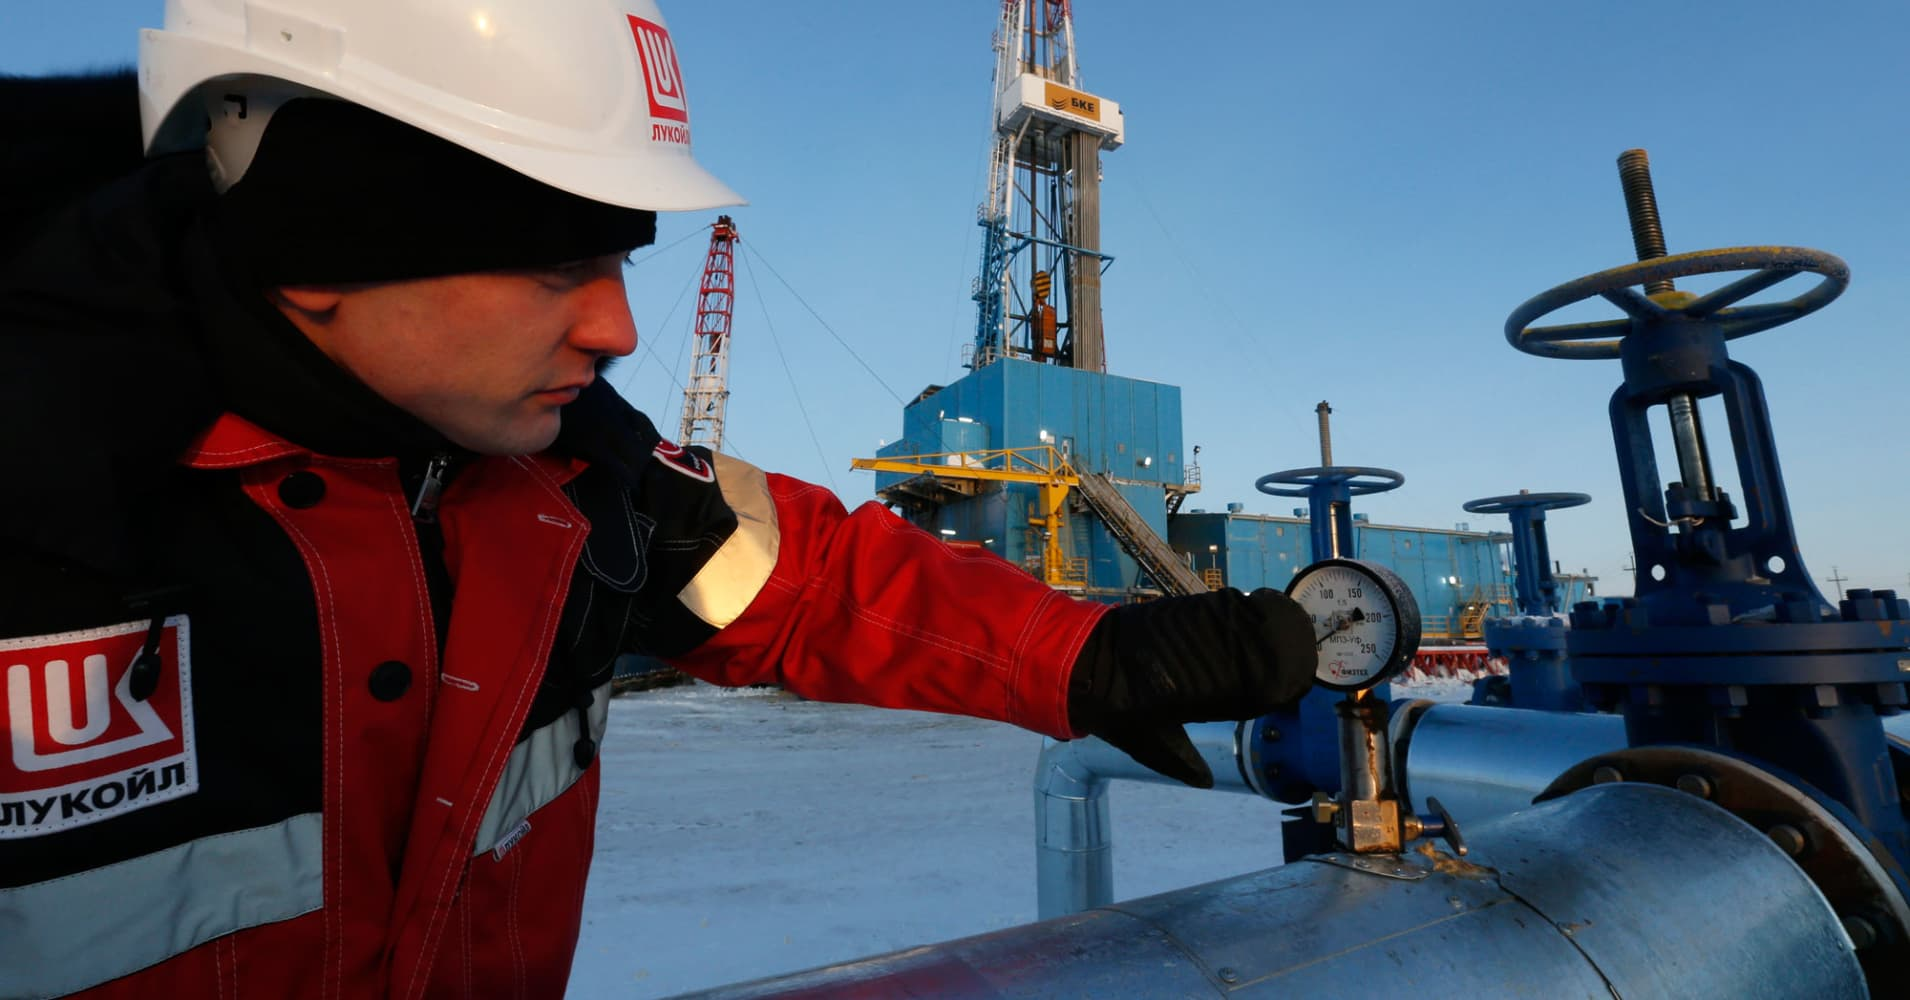 US oil closes 1.1 pct lower, but gains more than 3 pct for week